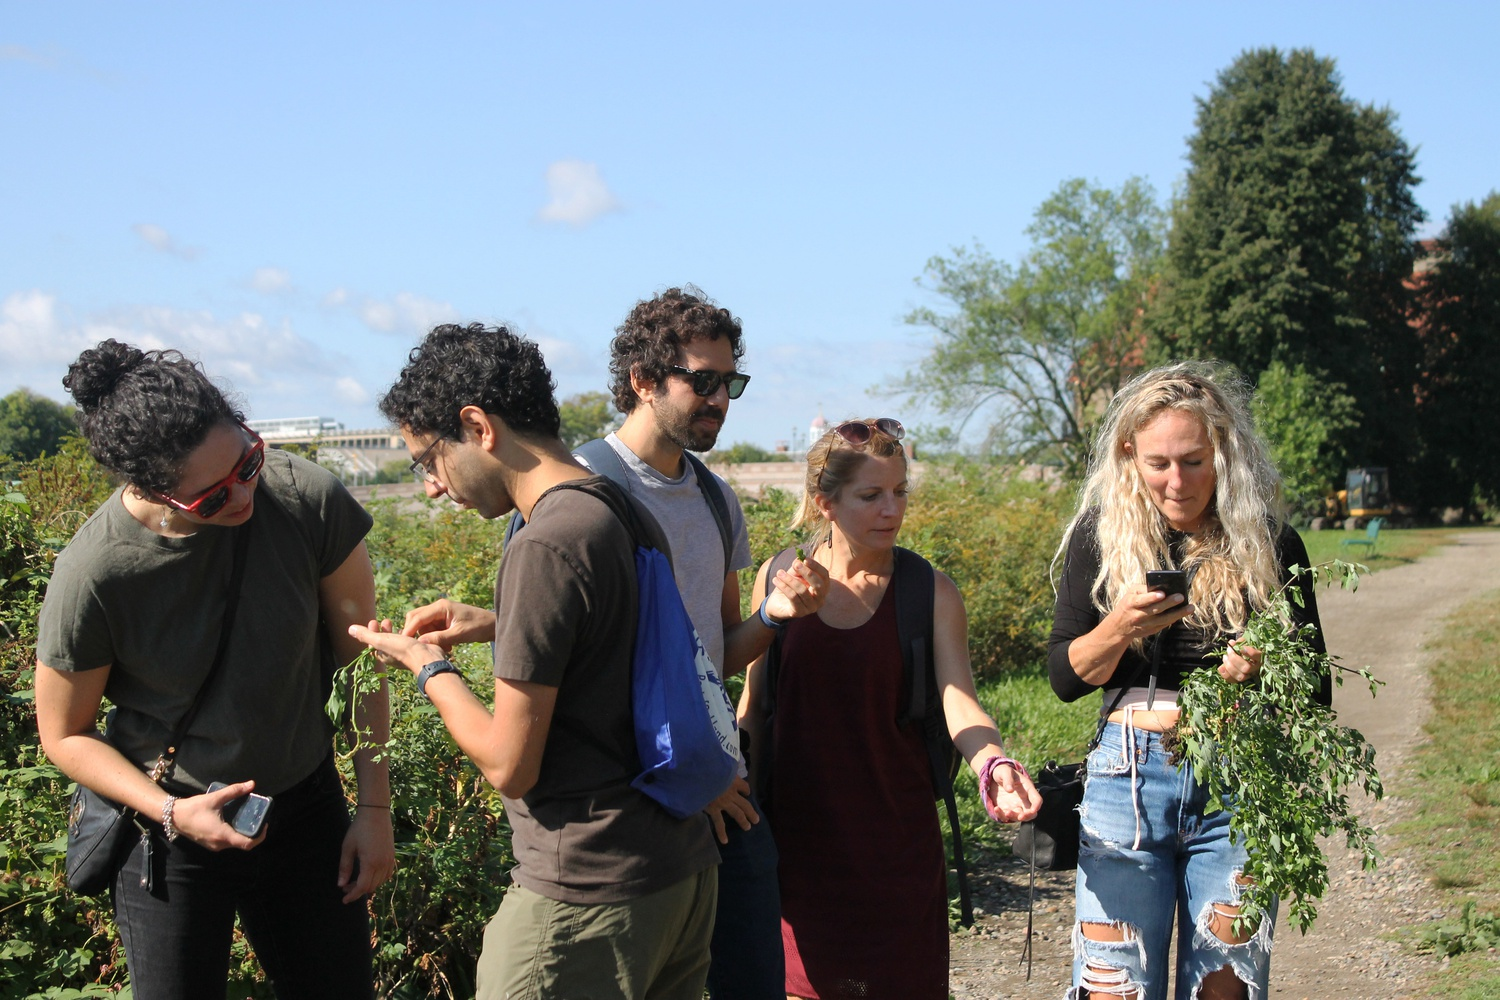 Participants on the plant foraging tour look at plants by the Charles River. The tour was free for participants and hosted by Fjällräven Cambridge.